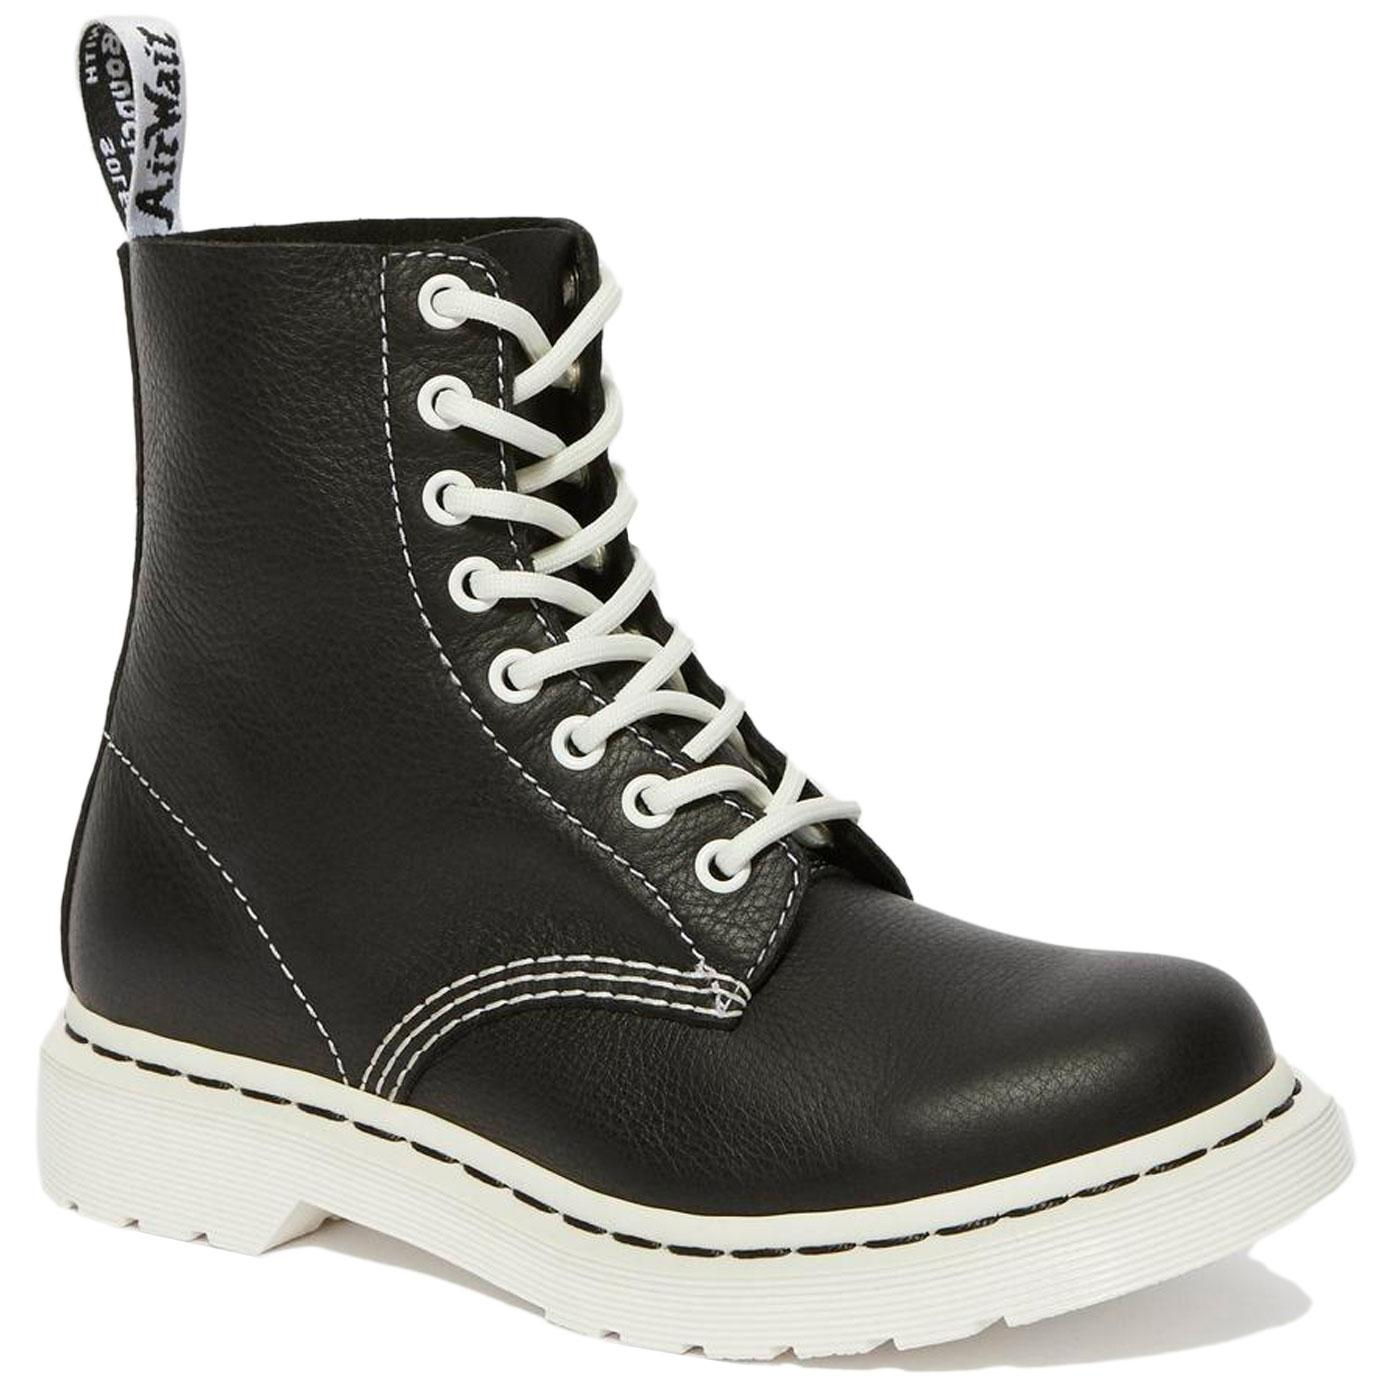 1460 Pascal DR MARTENS Black & White Ankle Boots